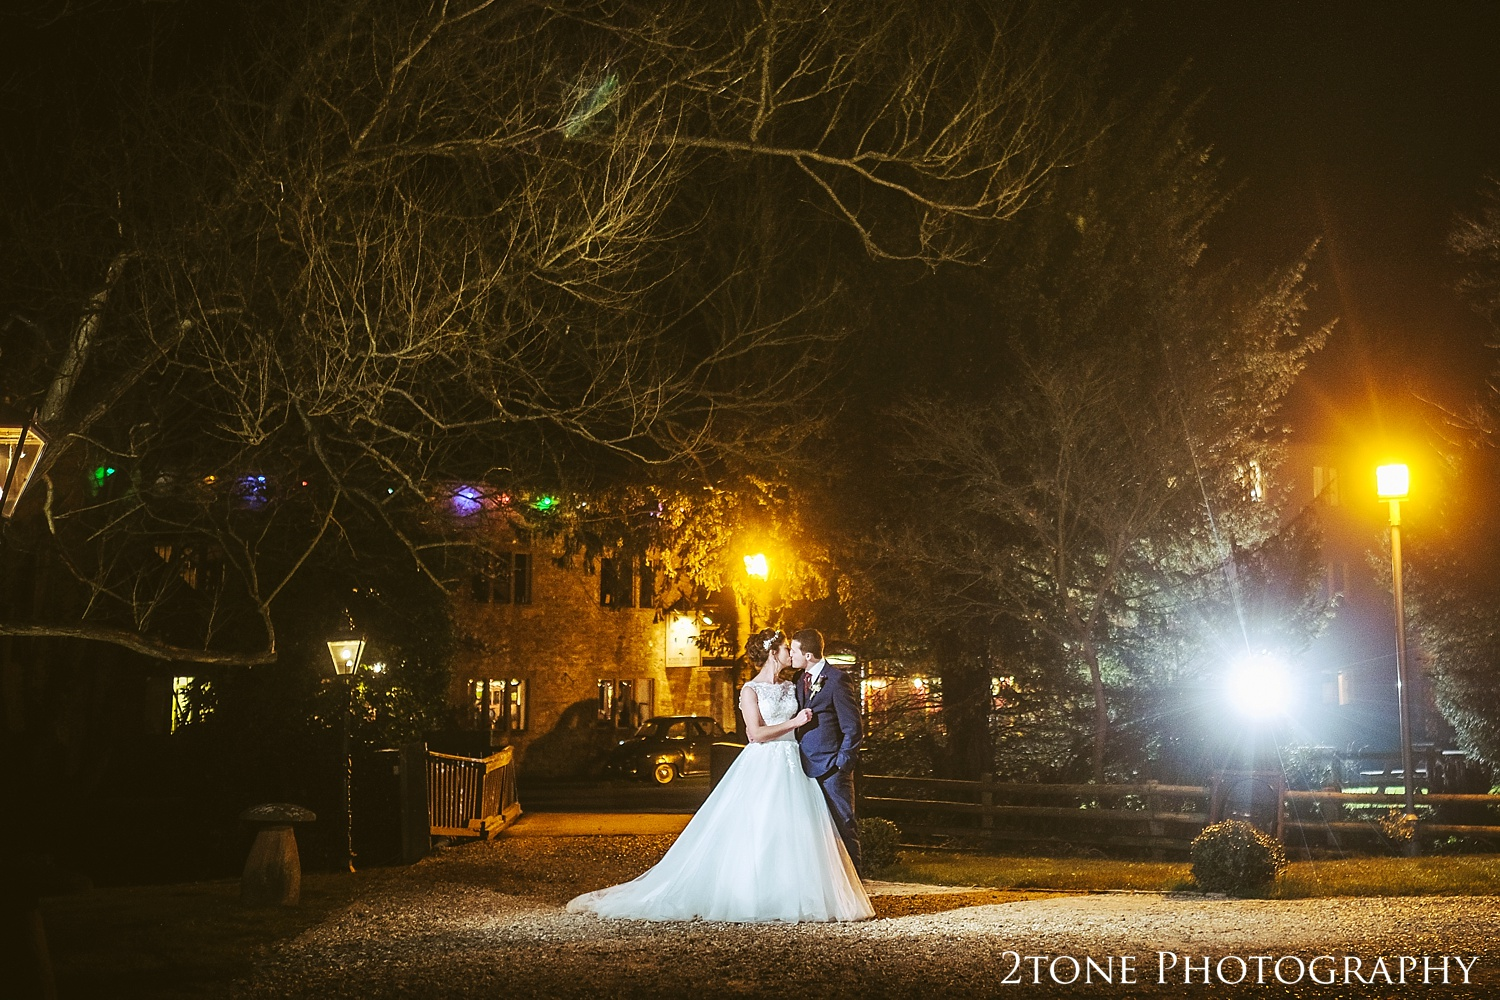 Creative portraiture at Haselbury Mill and the Old Tythe Barn in Somerset by www.2tonephotography.co.uk